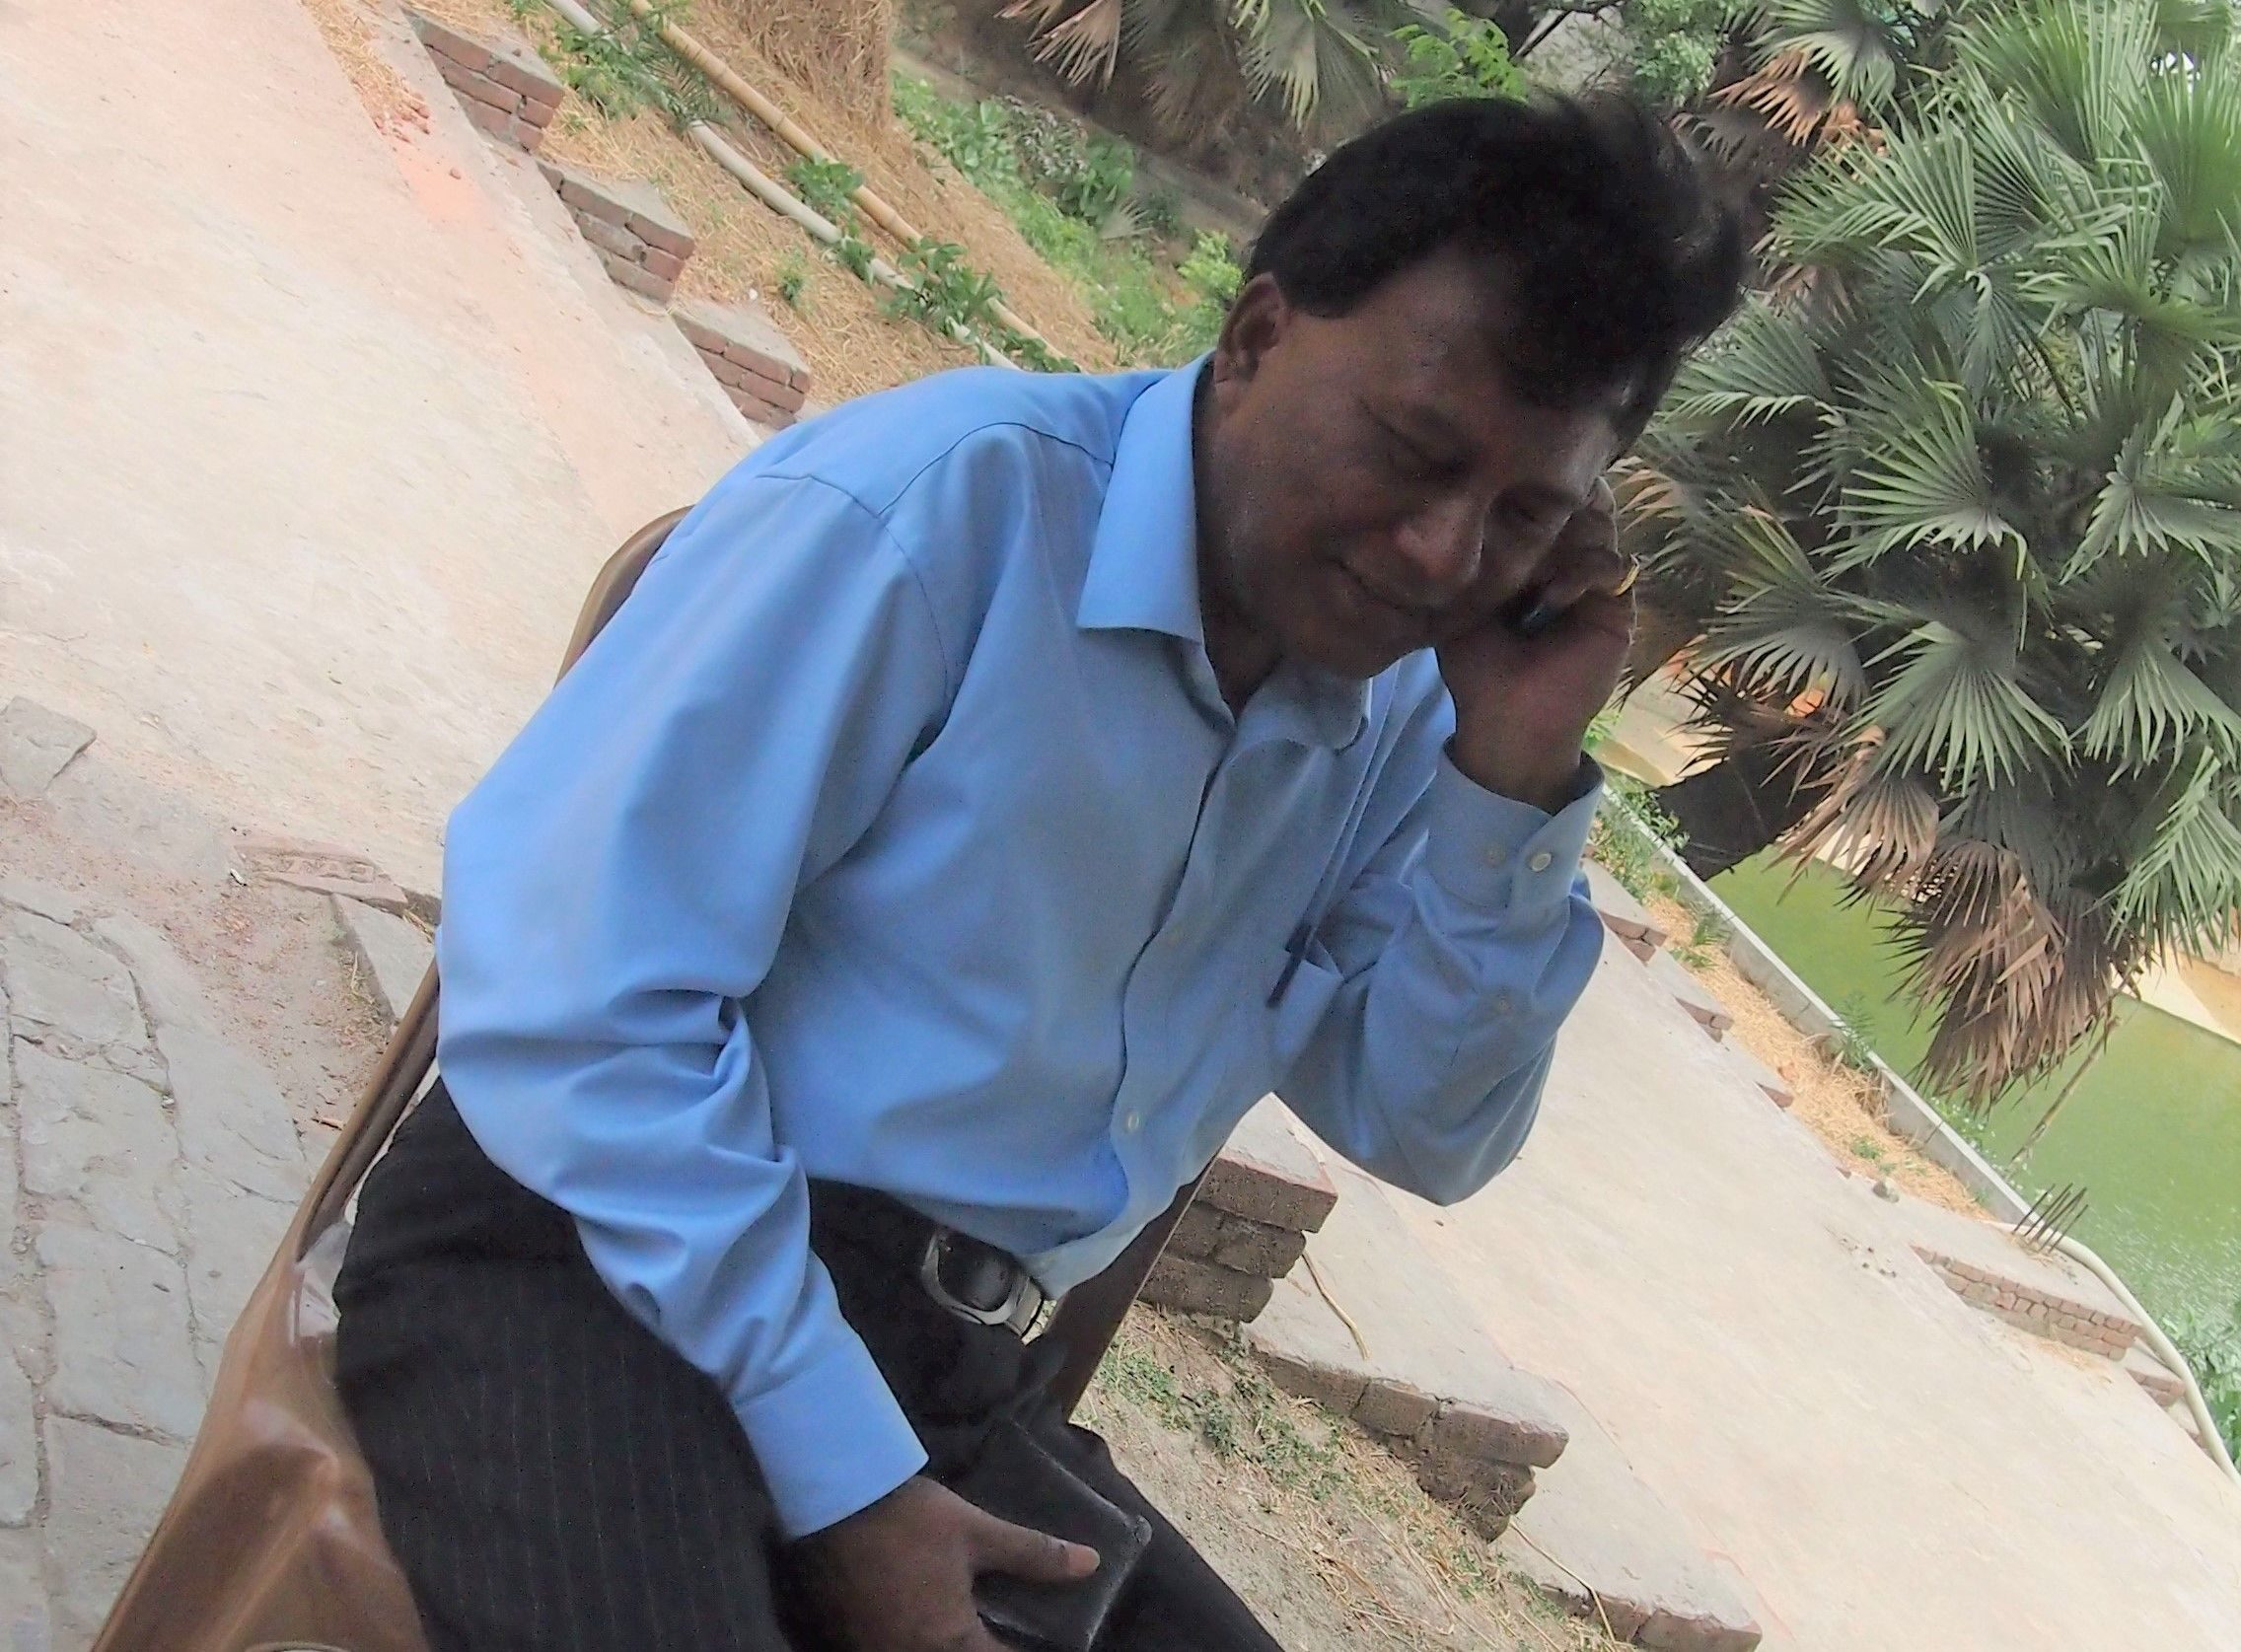 MD Anisuzzaman speaks on the telephone in a park. He is wearing a long sleeved cotton shirt tucked into pinstriped pants. He has thick hair.